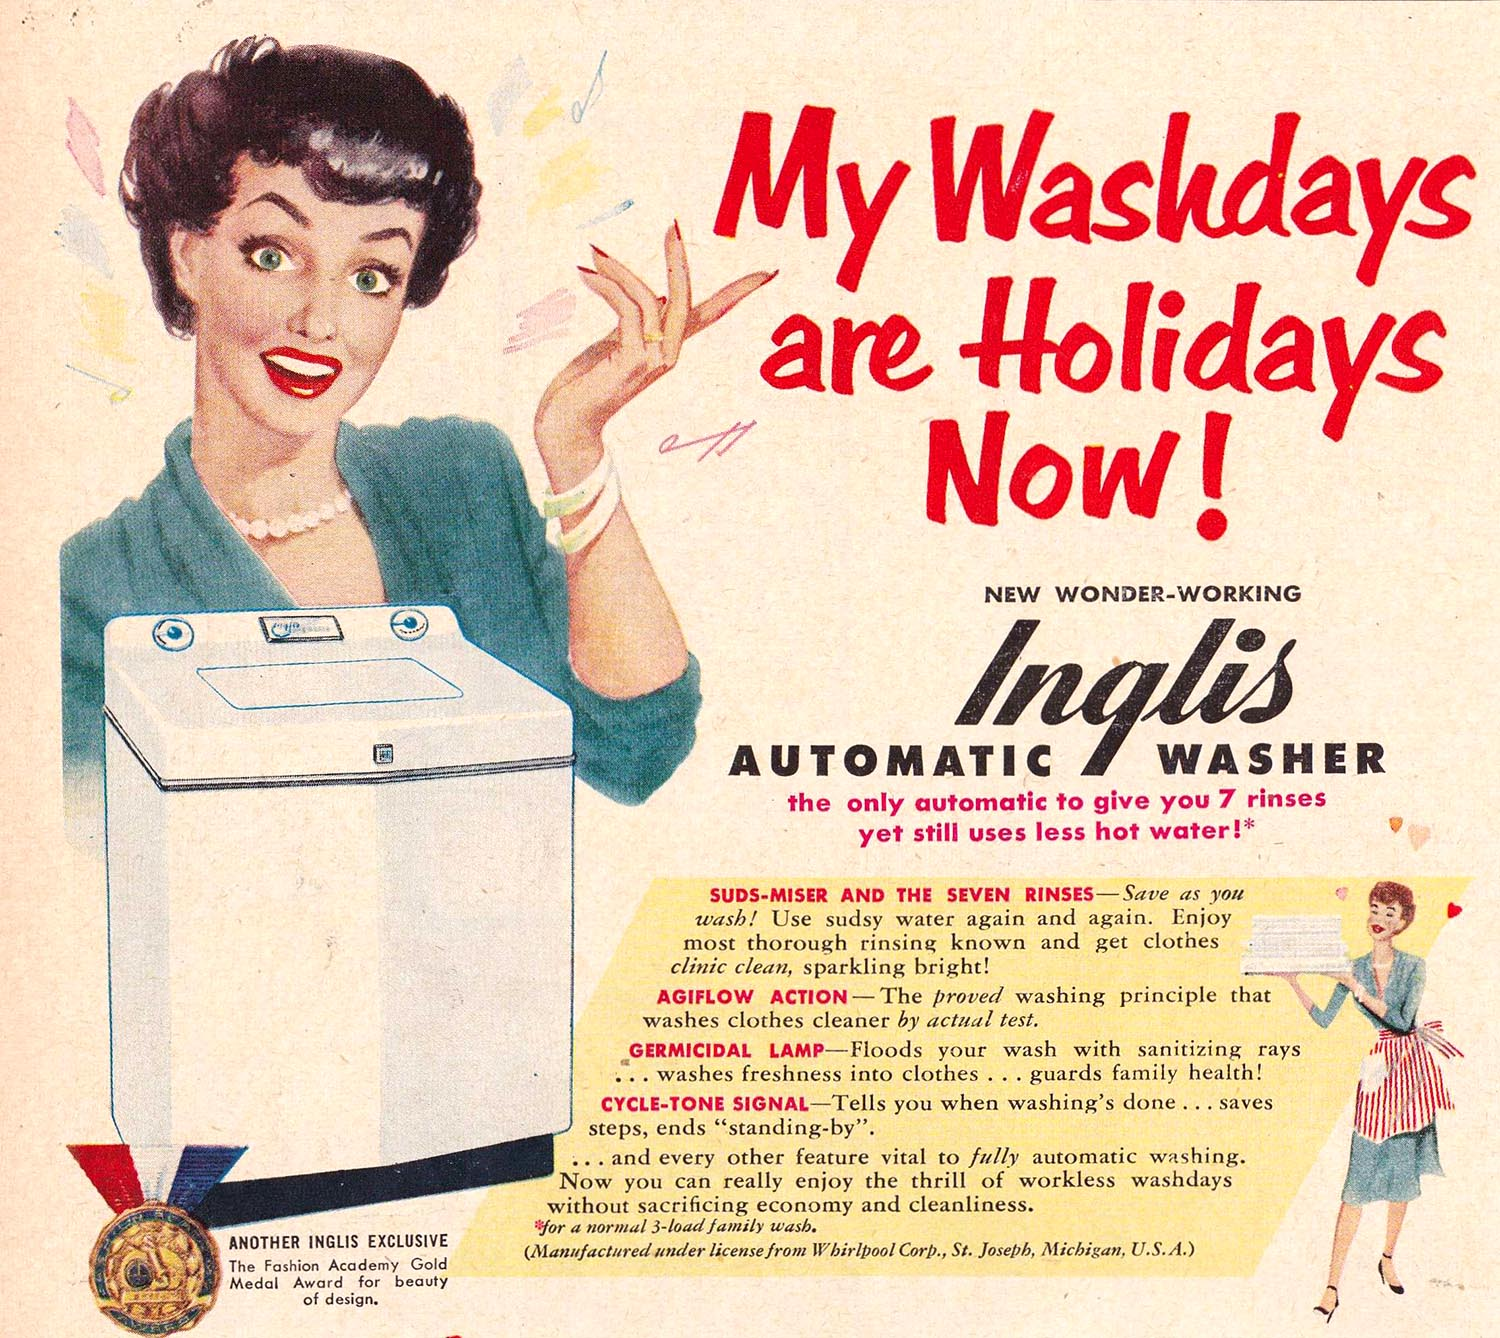 Home Appliance Advertising From The 1950s 1970s Basically Consisted Of  Women In A State Of Sublime Worship Of Their Brand New Appliance.